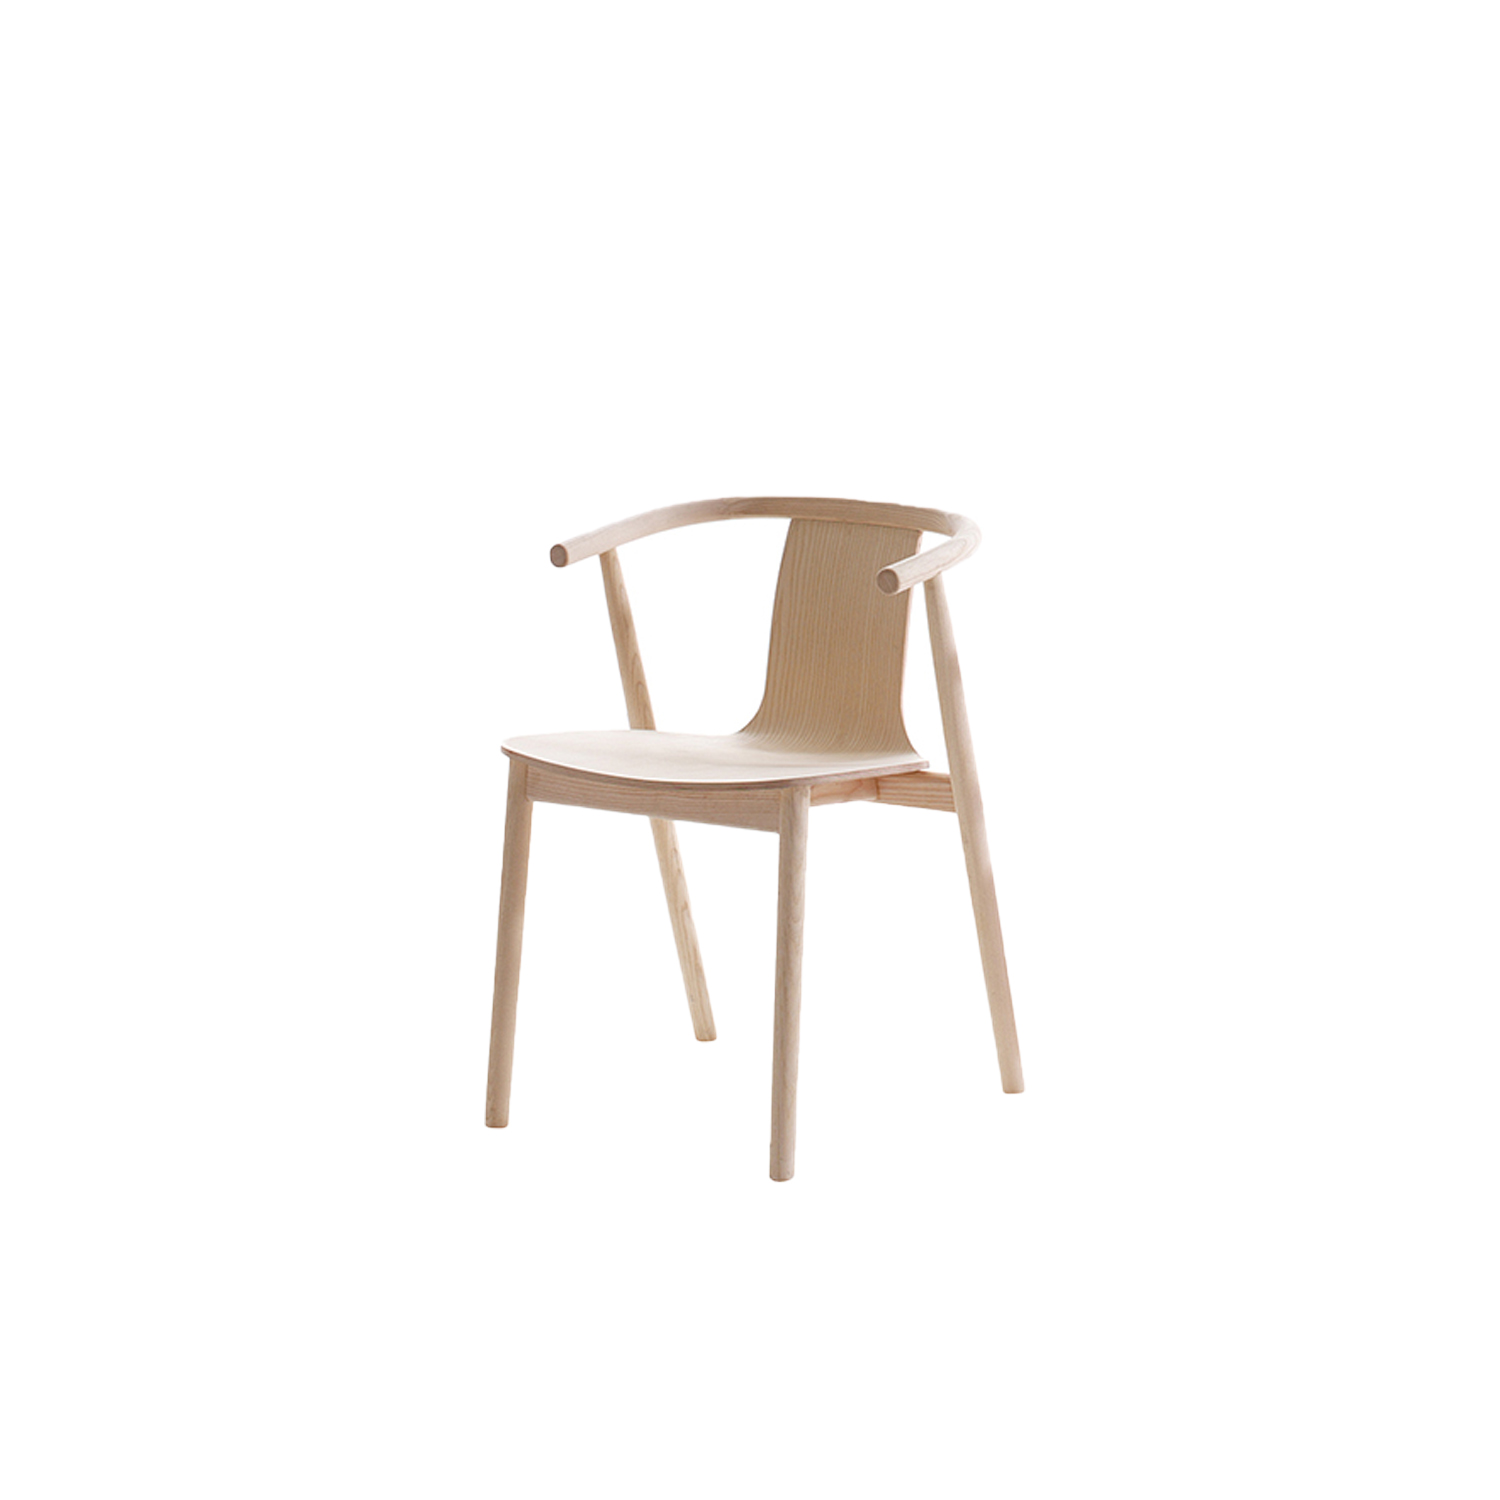 Bac Chair - Aesthetics and functionality form the perfect union in the Bac chair range. Envisioned by designer Jasper Morrison, these objects of design were inspired by the namesake table and were created for Cappellini as a natural evolution of the line.   Bac, Bac One and Bac Two seats have a frame made of solid ash wood, and are available in a bleached, oak-stained, black-stained, wengé-stained or Shanghai blue aniline stained finish. The seat is made of ash, with the same finish as the frame.   For the Bac, Bac One and Bac Two chairs it is also possible to upholster the front of the ash seat with leather or fabric.  | Matter of Stuff